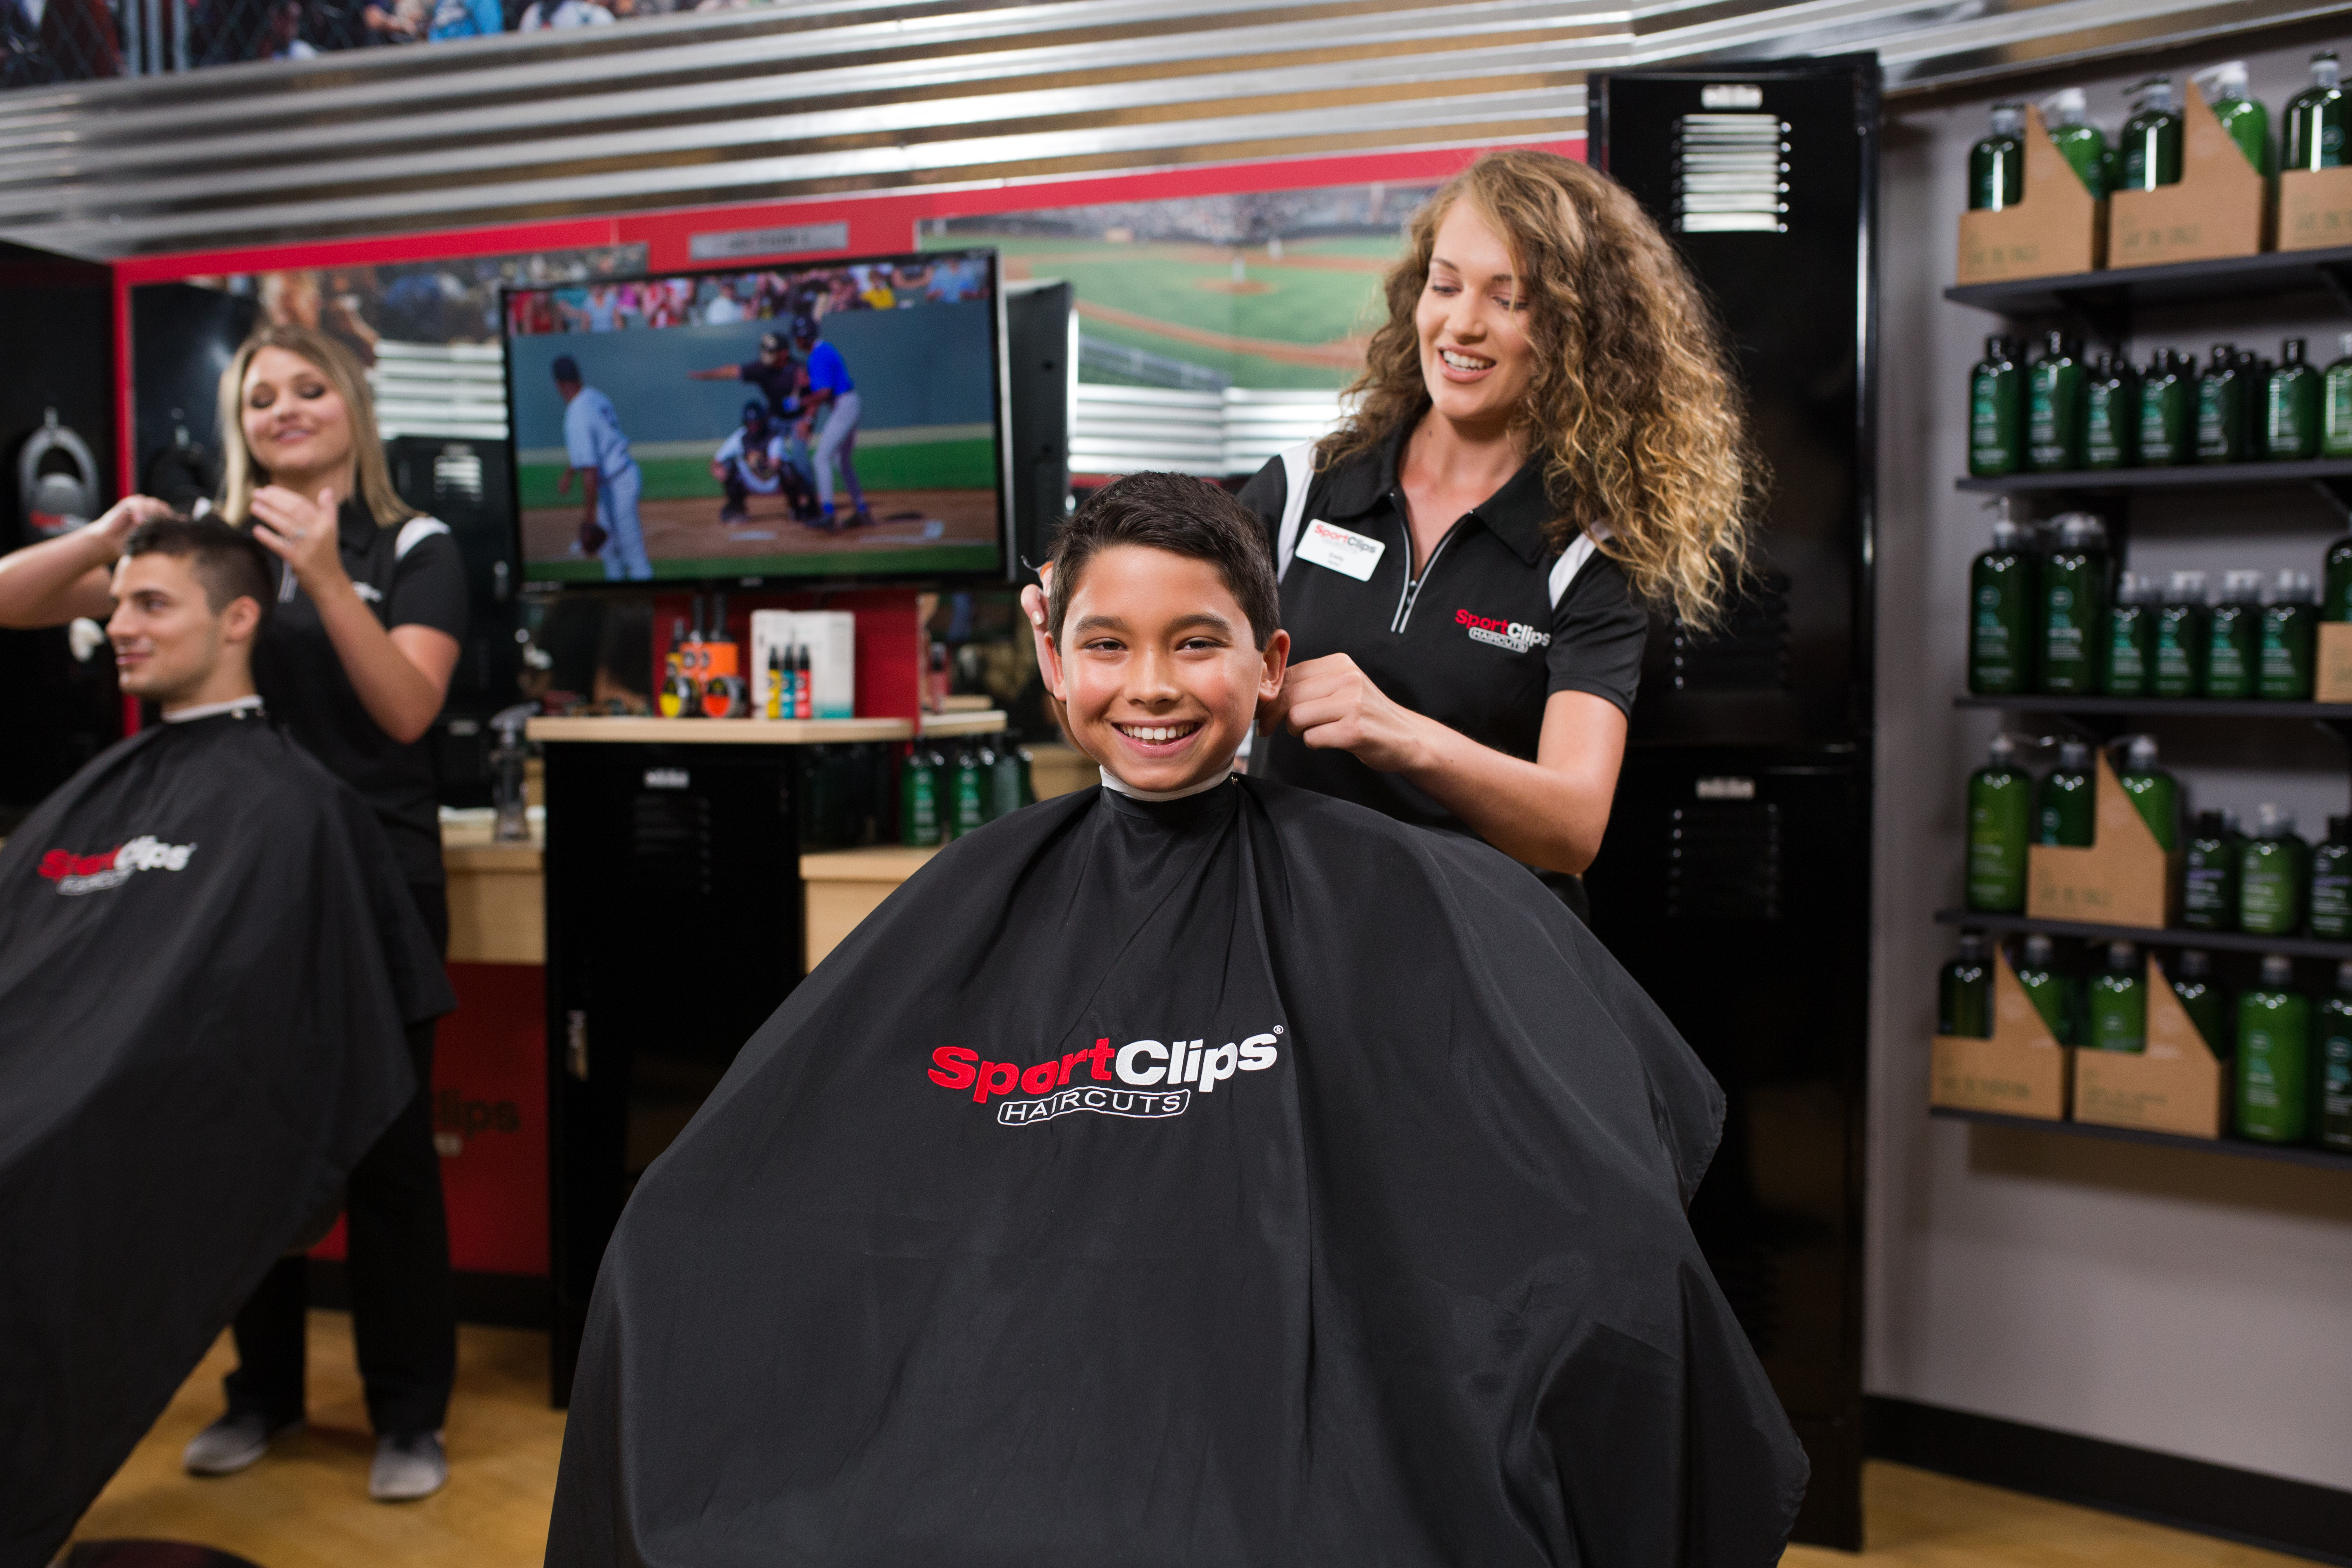 Boy clien receiving a Sport Clips haircut